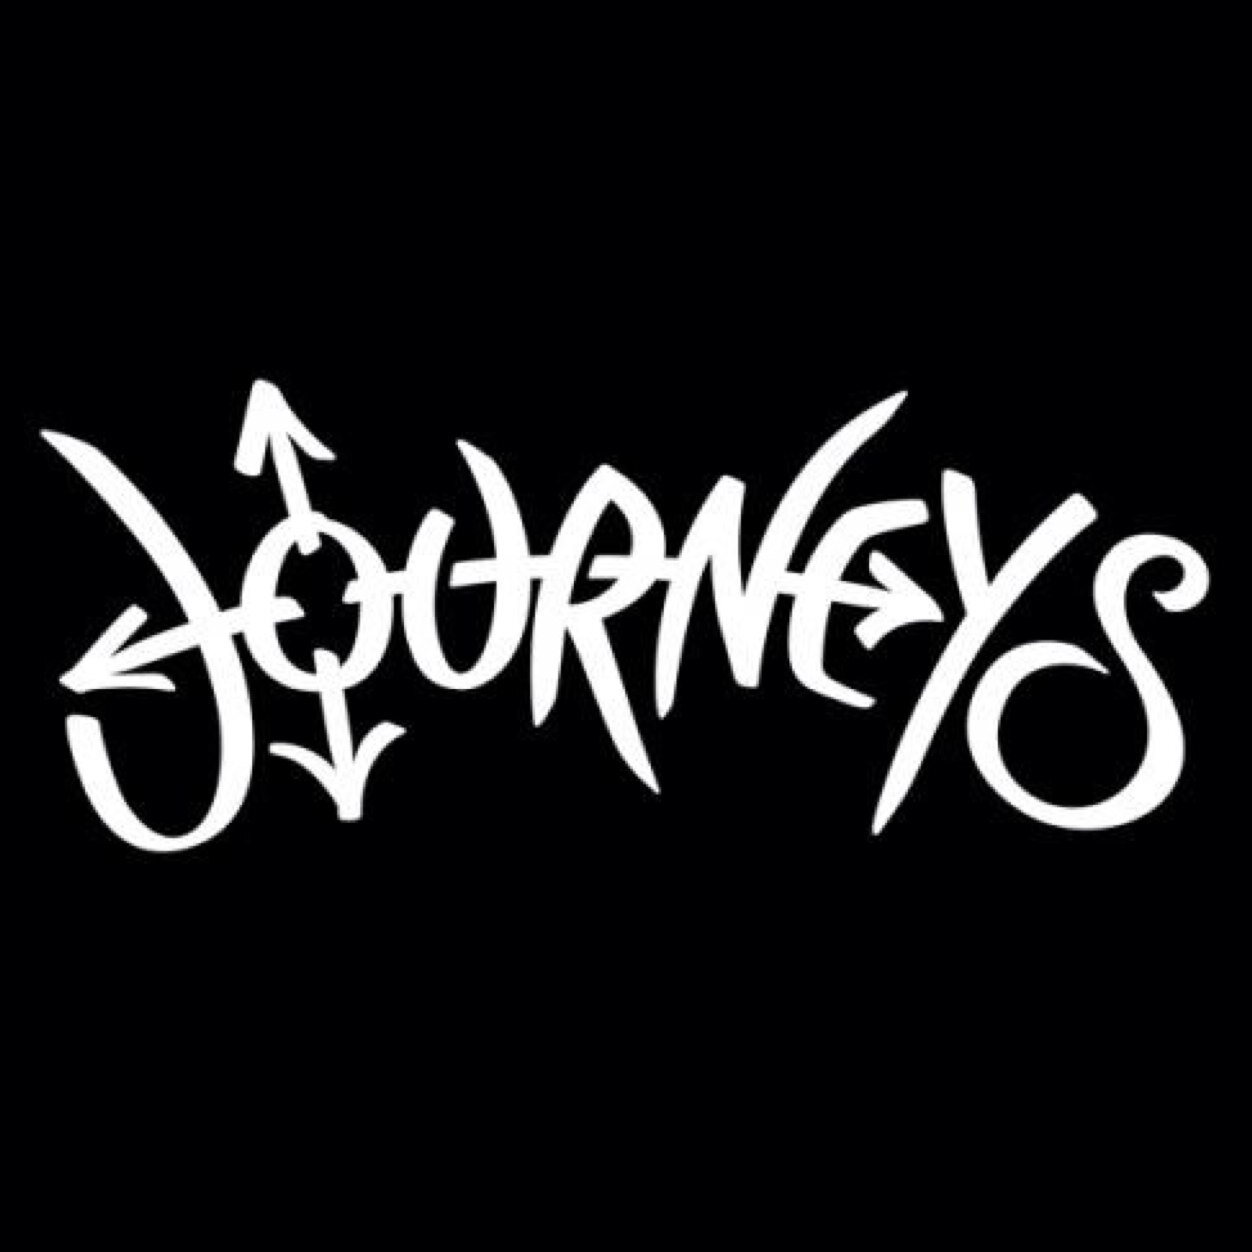 Journeys Shoes (@JourneysShoes) | Twitter